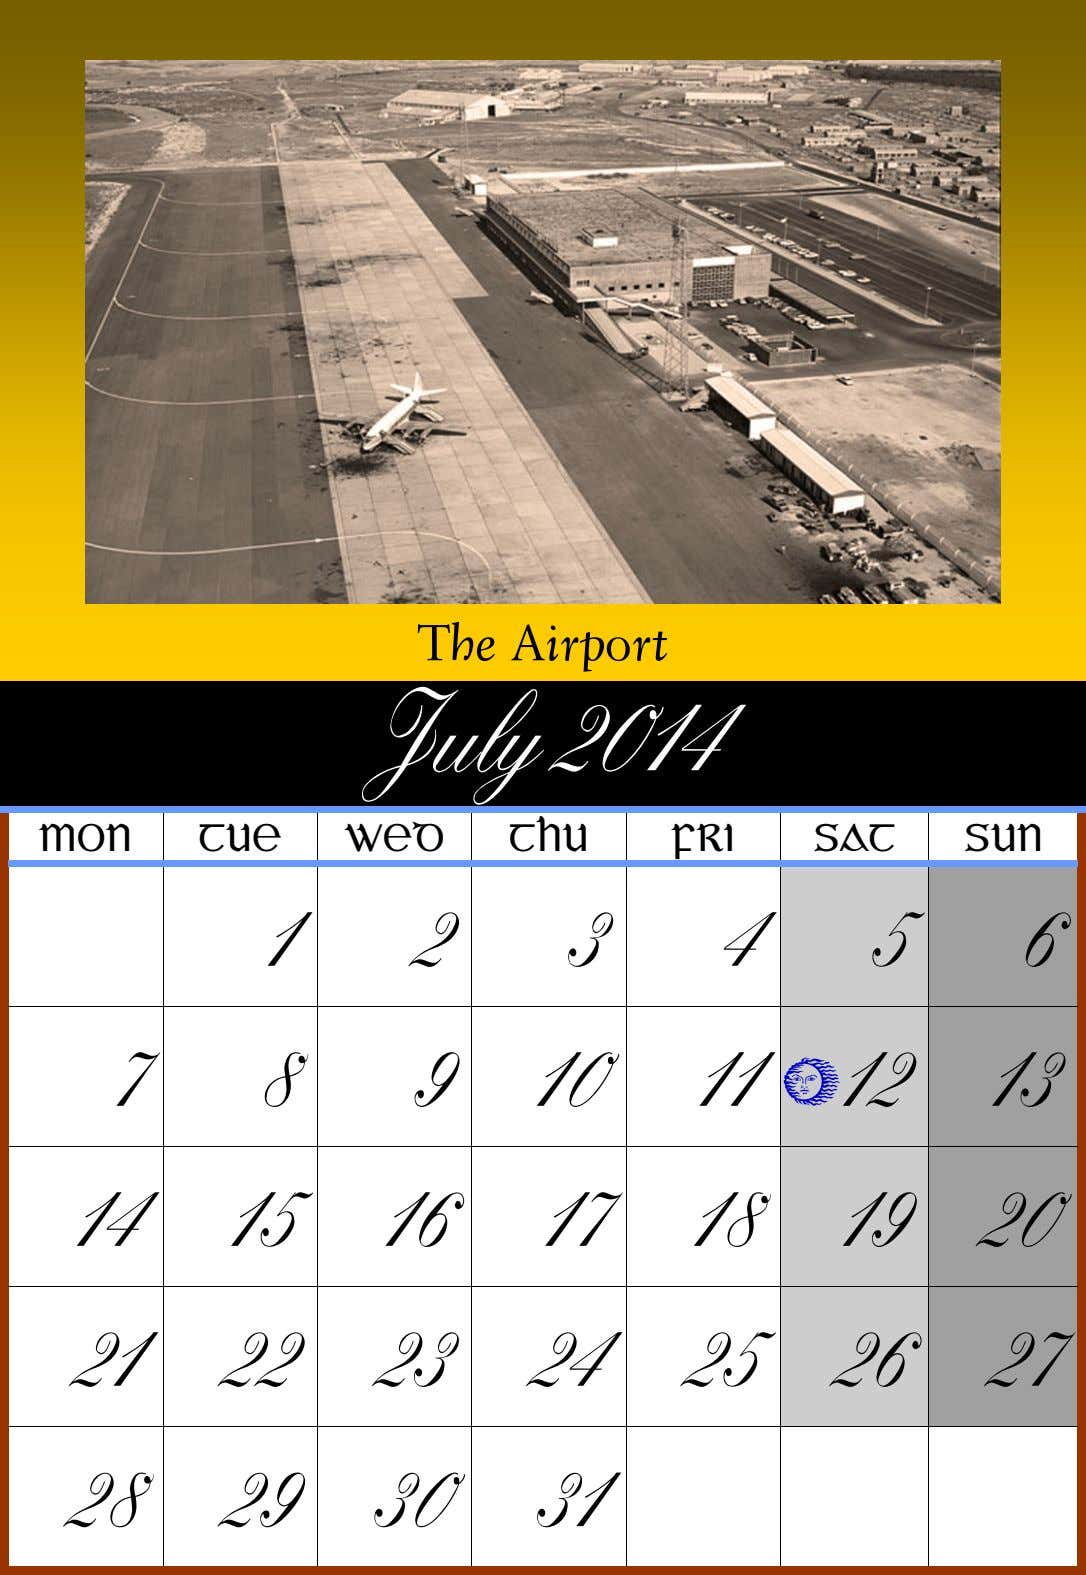 The Airport July 2014 MON TUE WED THU FRI SAT SUN 1 2 3 4